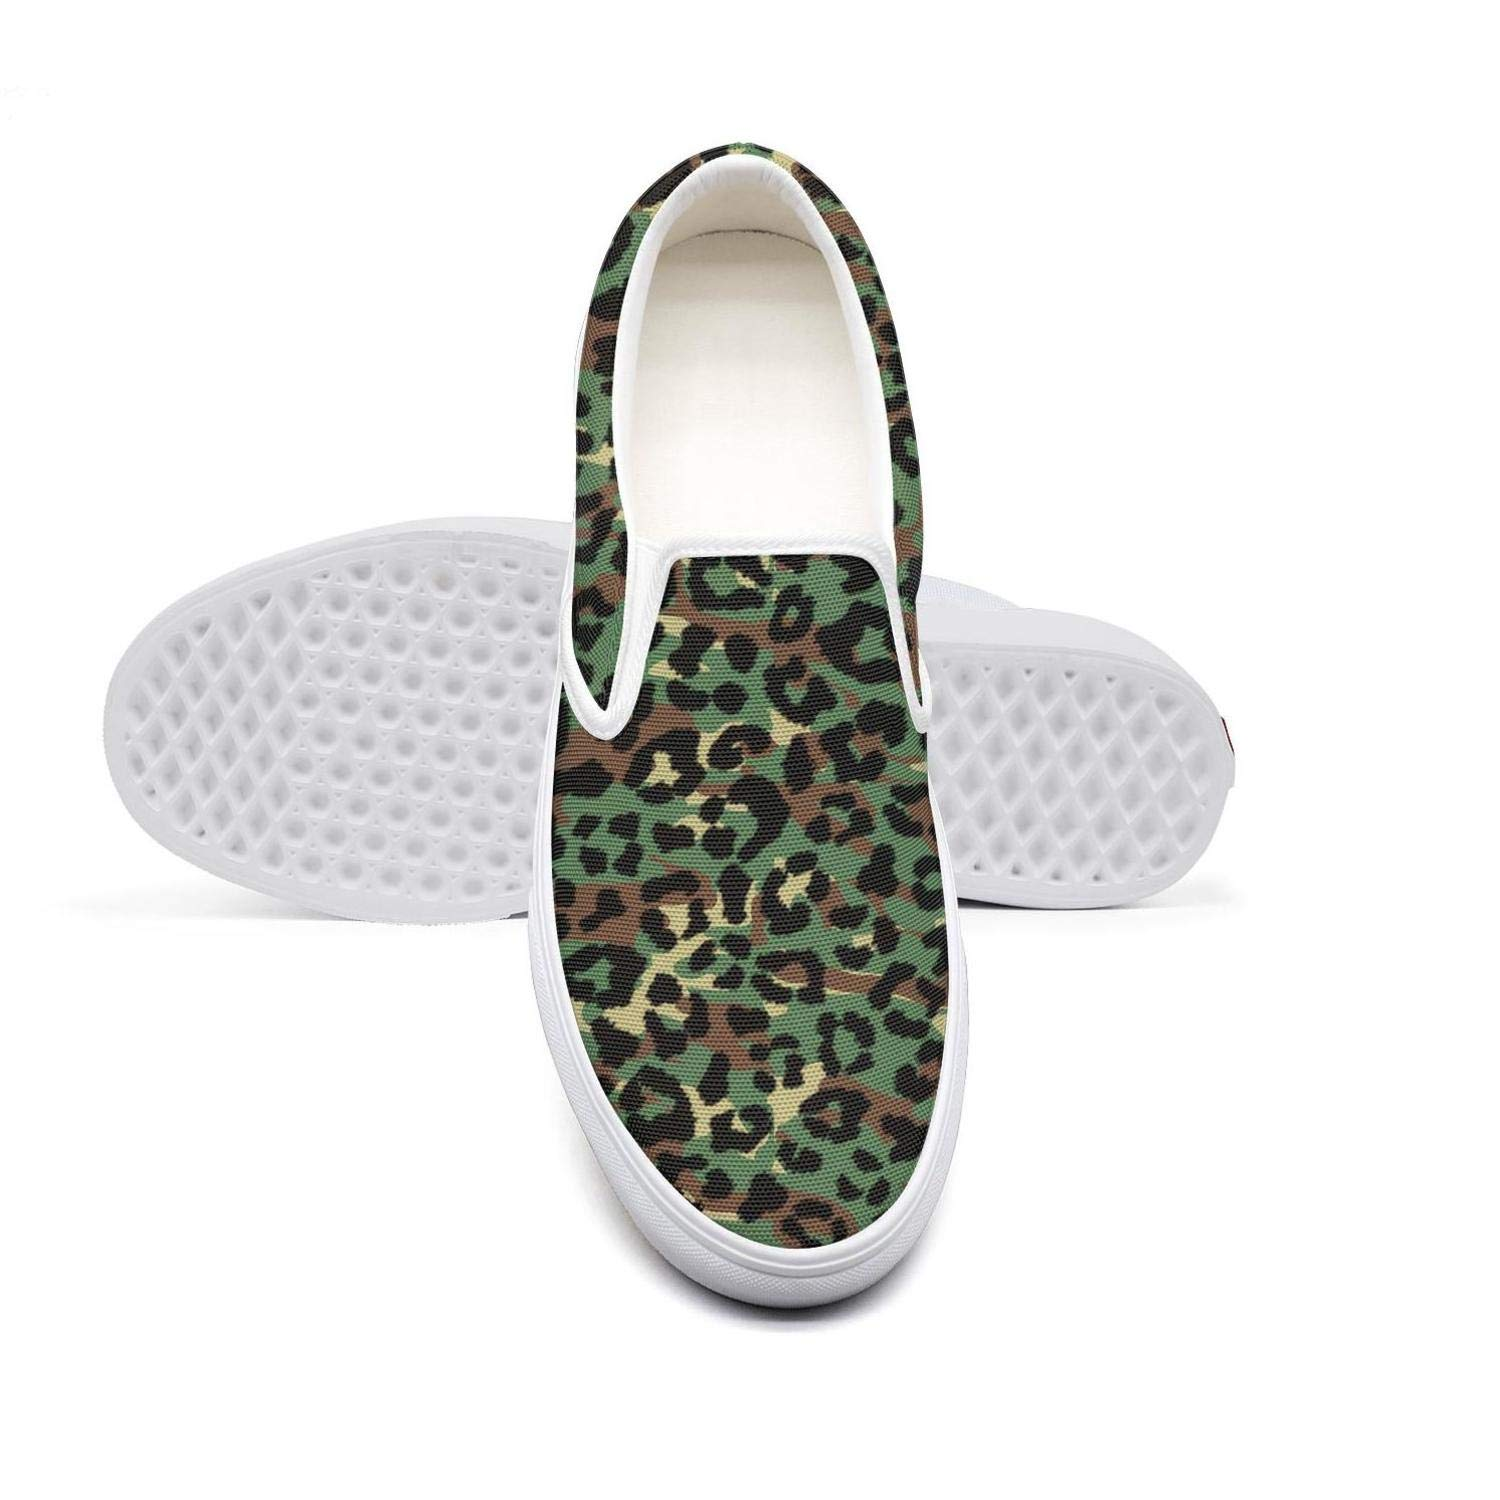 Womens Slipon Canvas Shoes for Women Leopard Cheetah Print Zebra Pattern Dark Yellow Sneakers Awesome Non Slip Sneakers Shoes